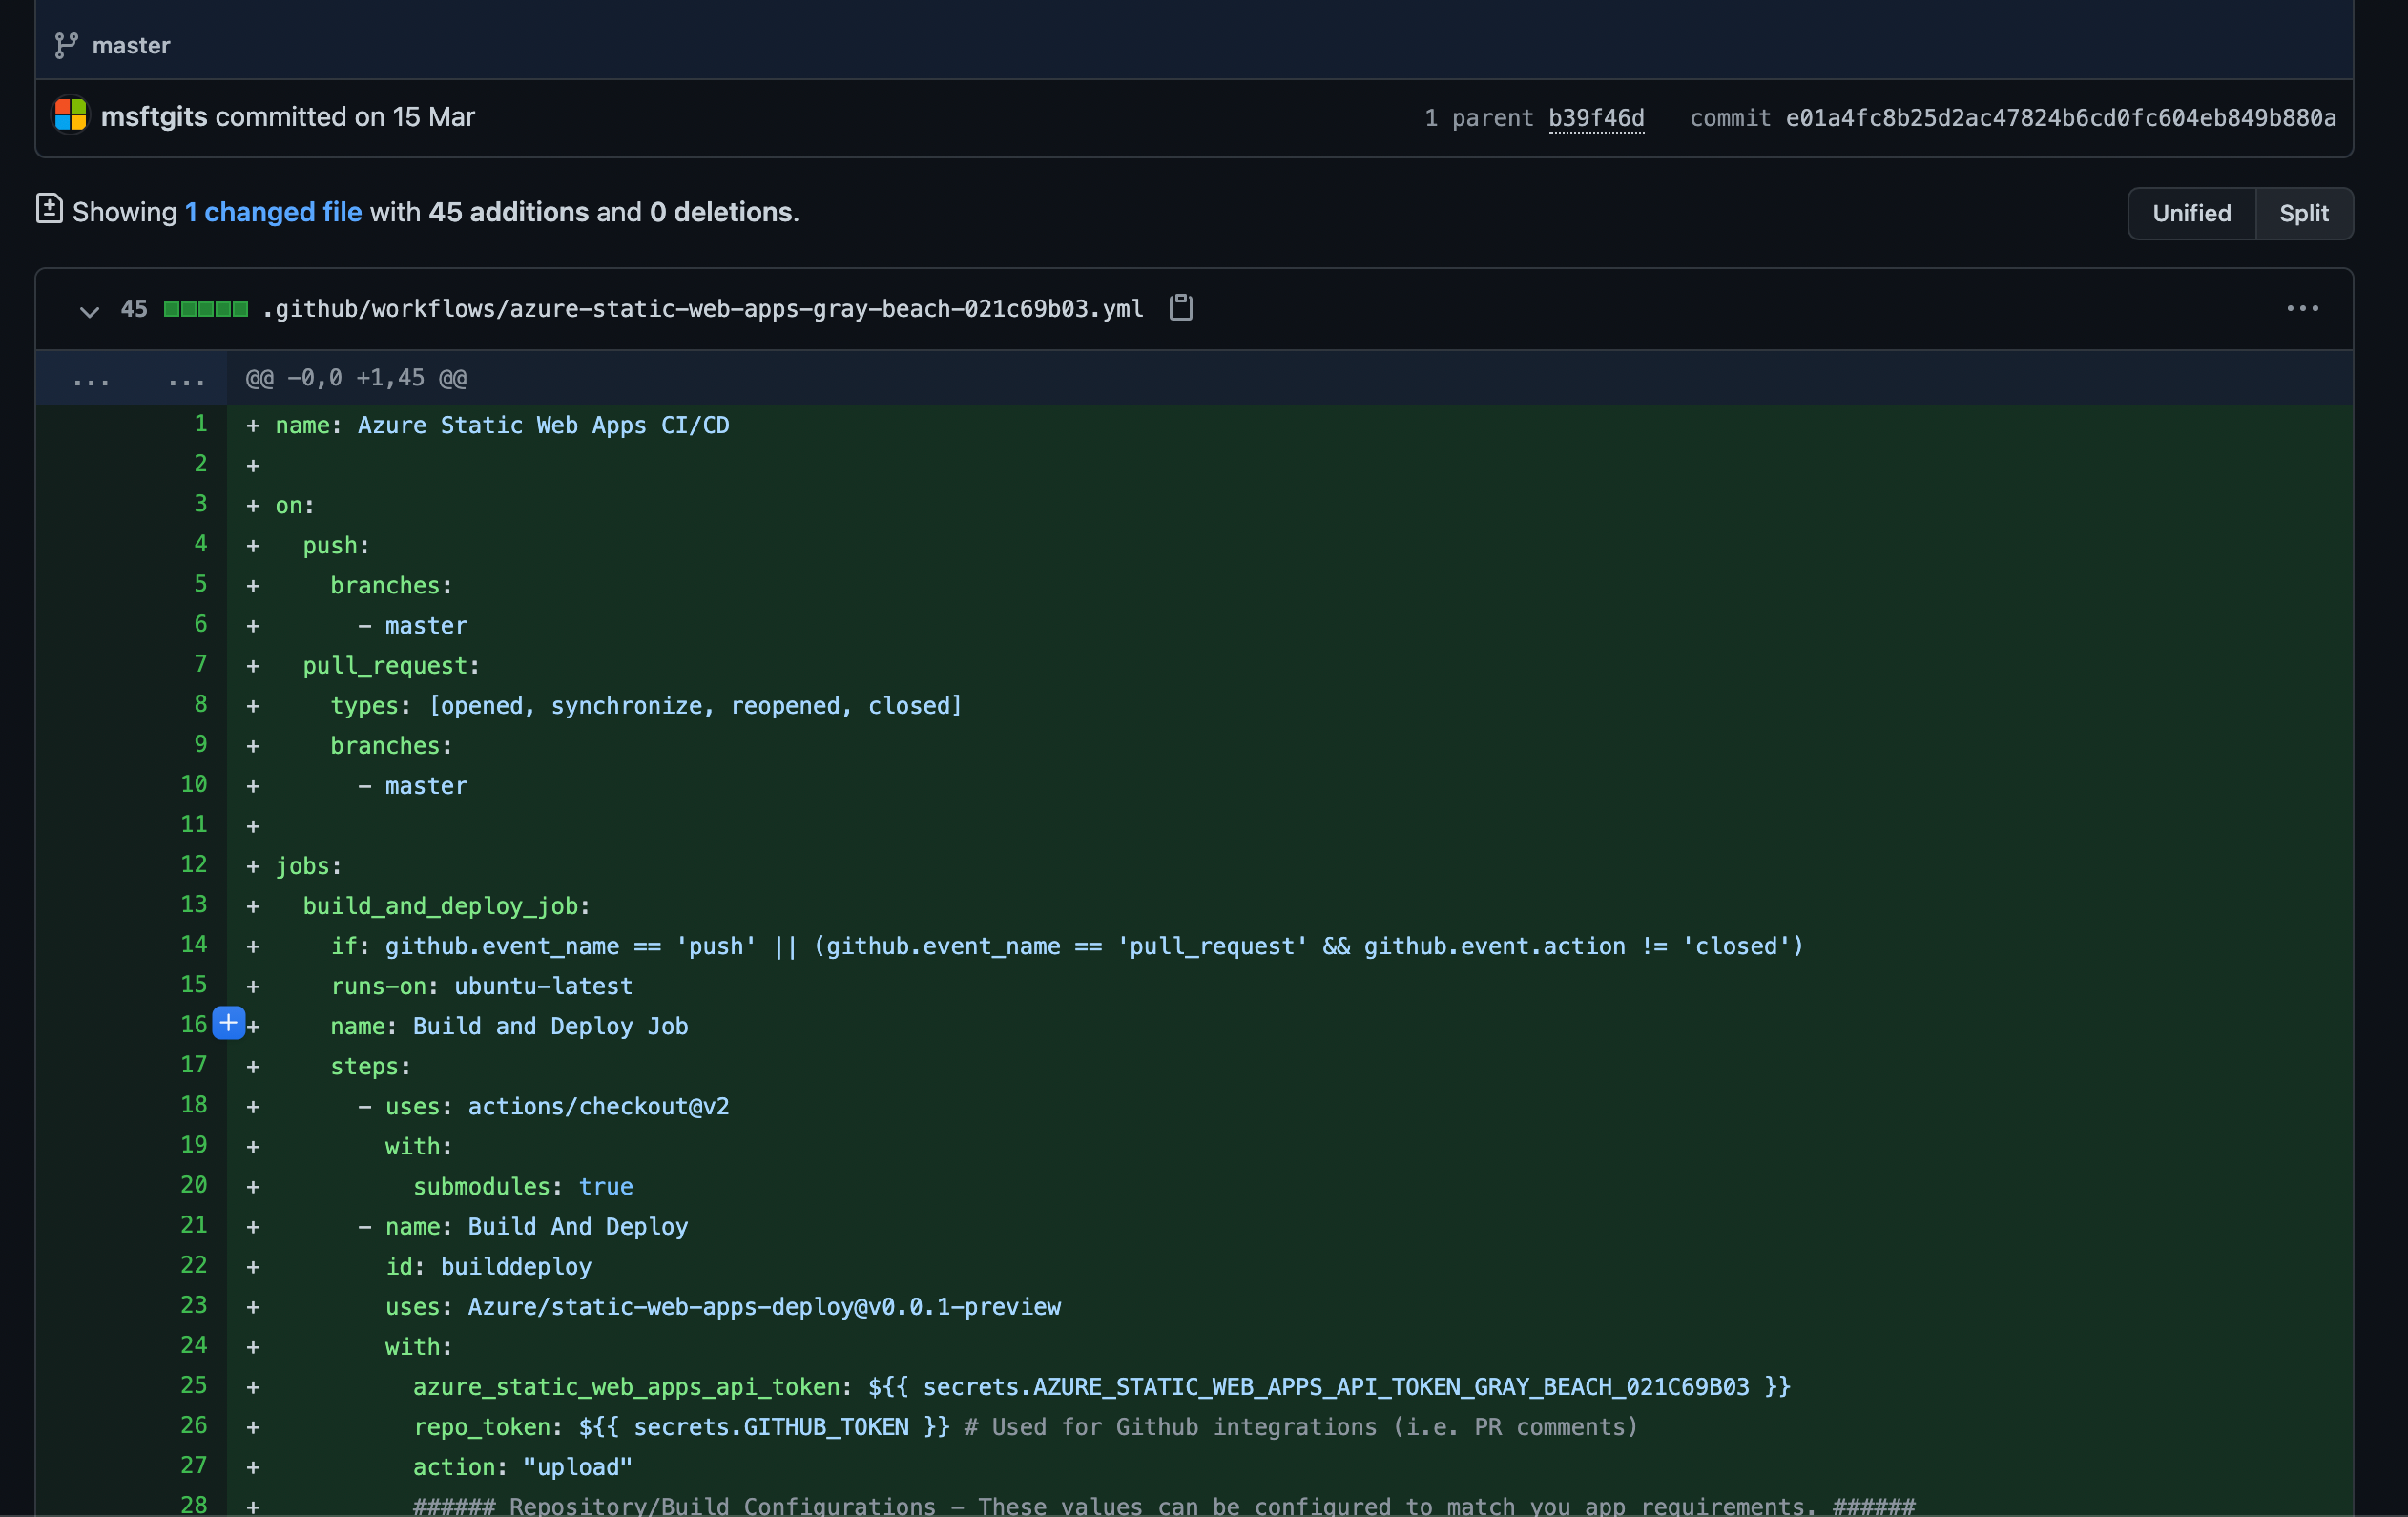 Screenshot showing the committed GitHub Actions workflow File